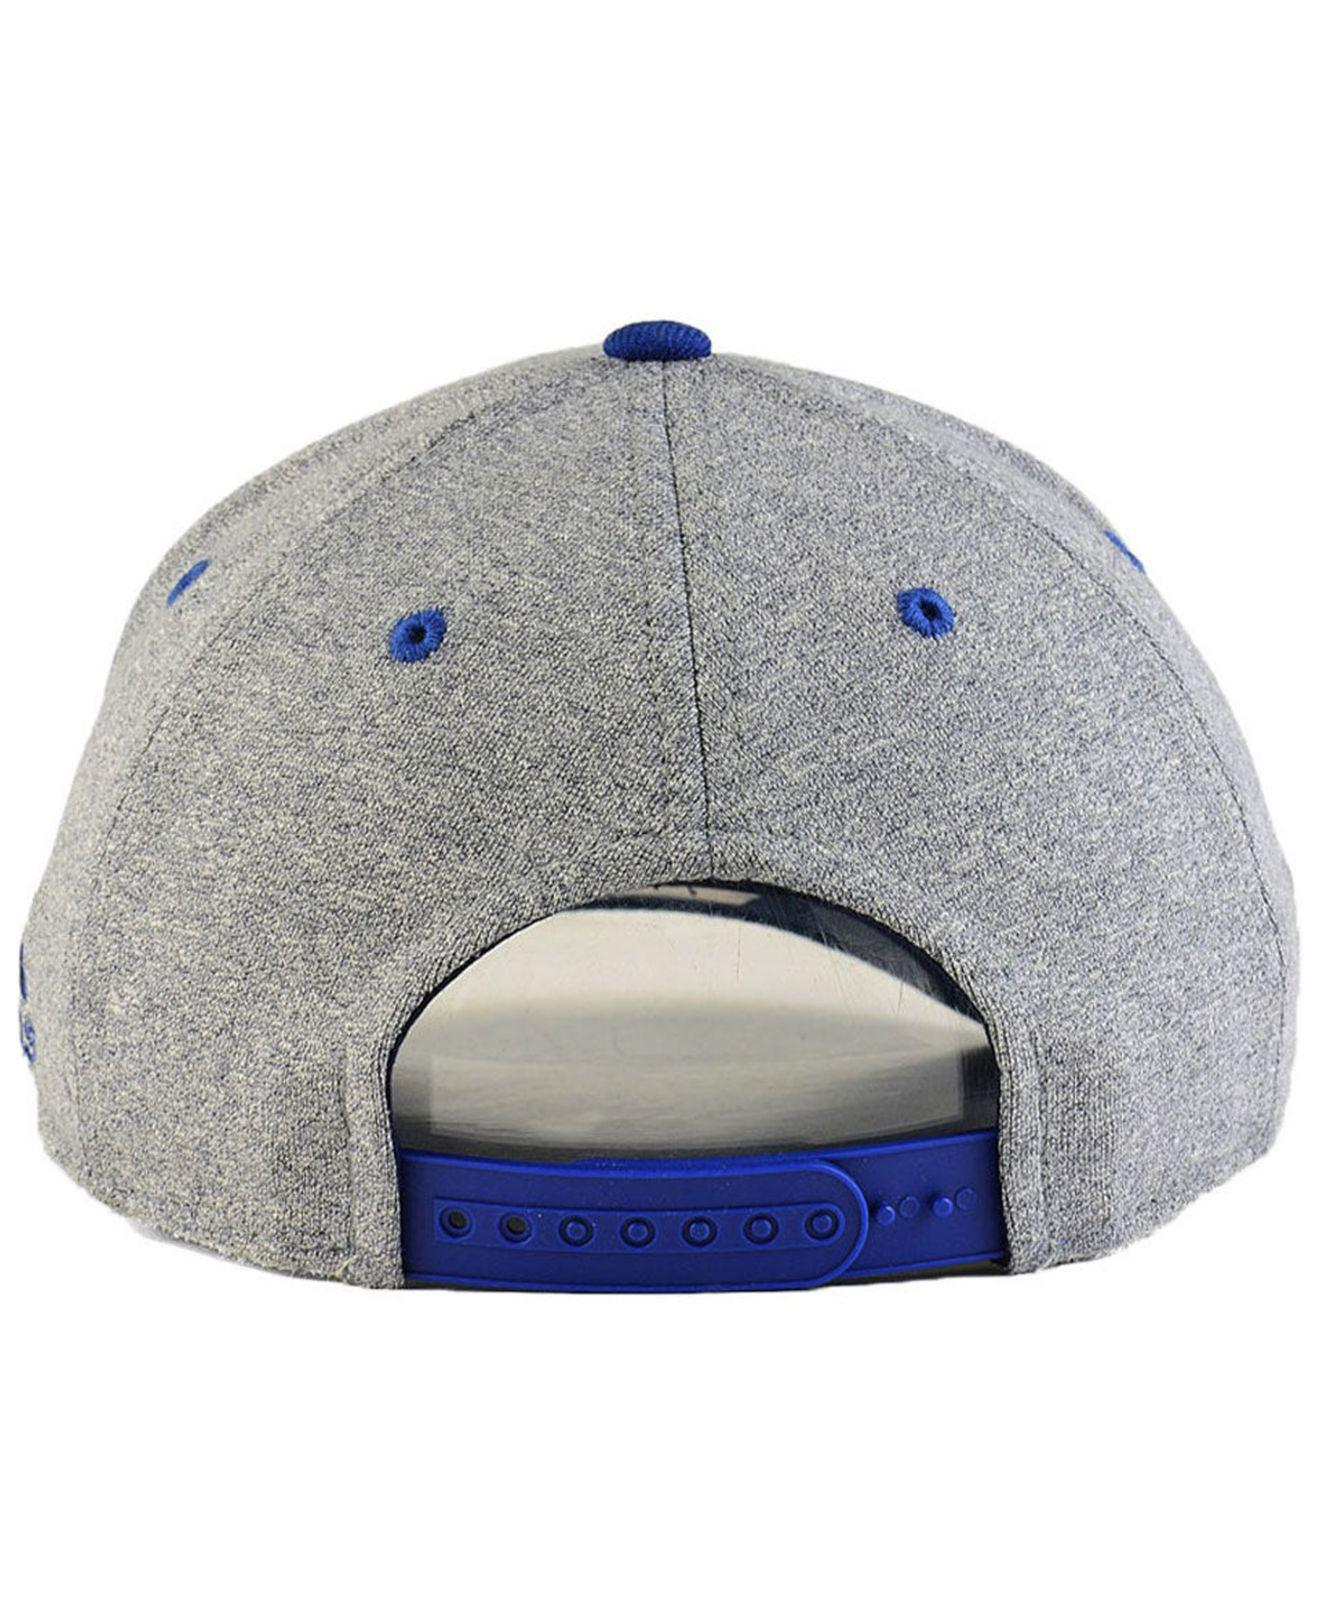 new styles b16bd 26370 ... inexpensive adidas blue vancouver canucks heather line change cap for  men lyst. view fullscreen 1687e